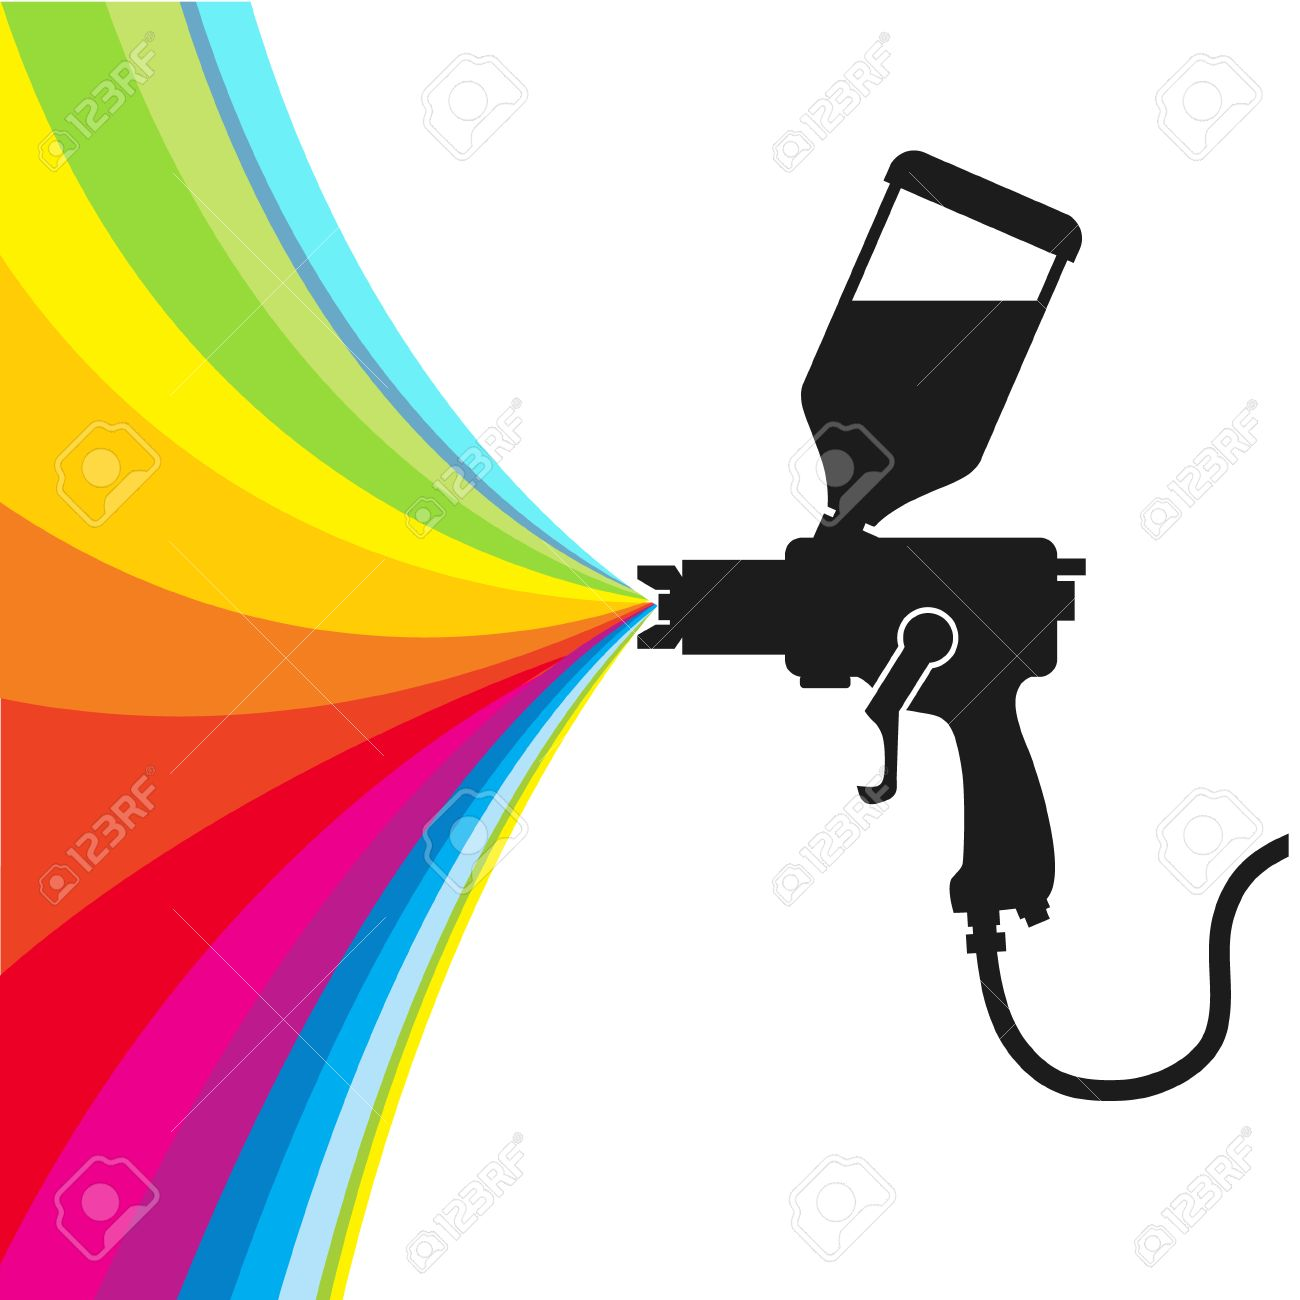 silhouette gun spray paint color vector royalty free cliparts rh 123rf com spray paint can clipart paint spray gun free clipart